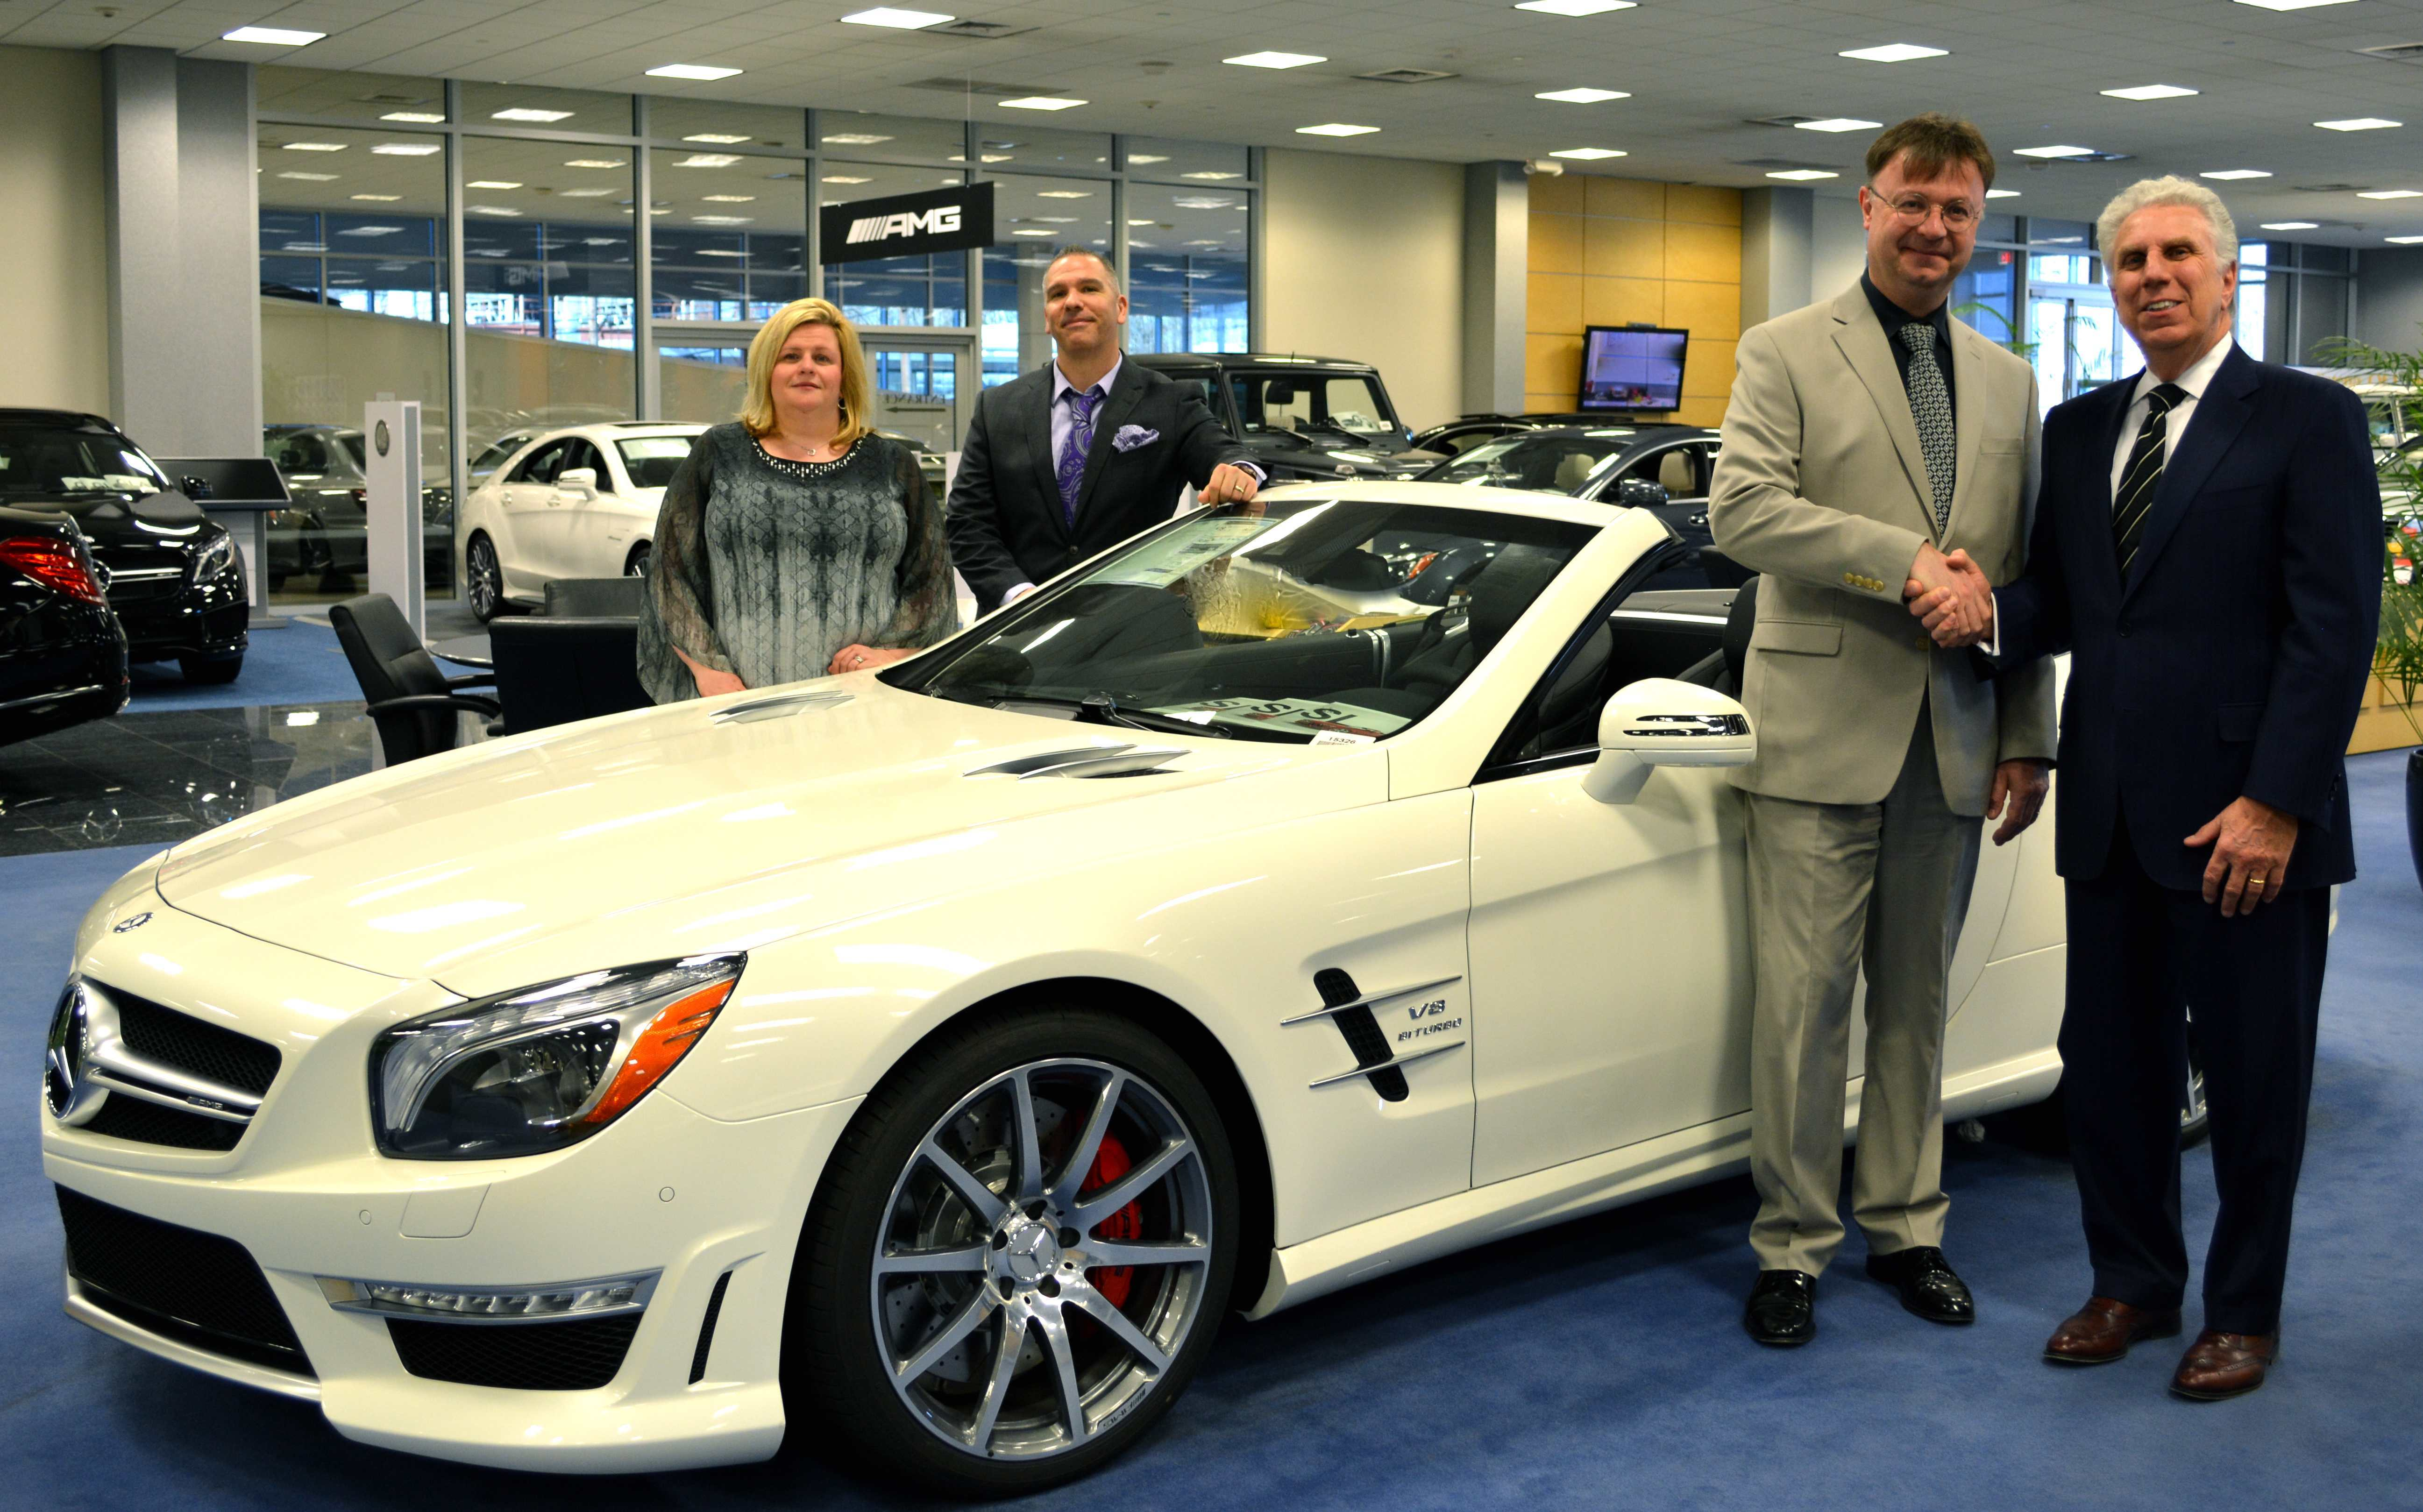 Ray catena of union announced as corporate sponsor for nj for Mercedes benz ray catena